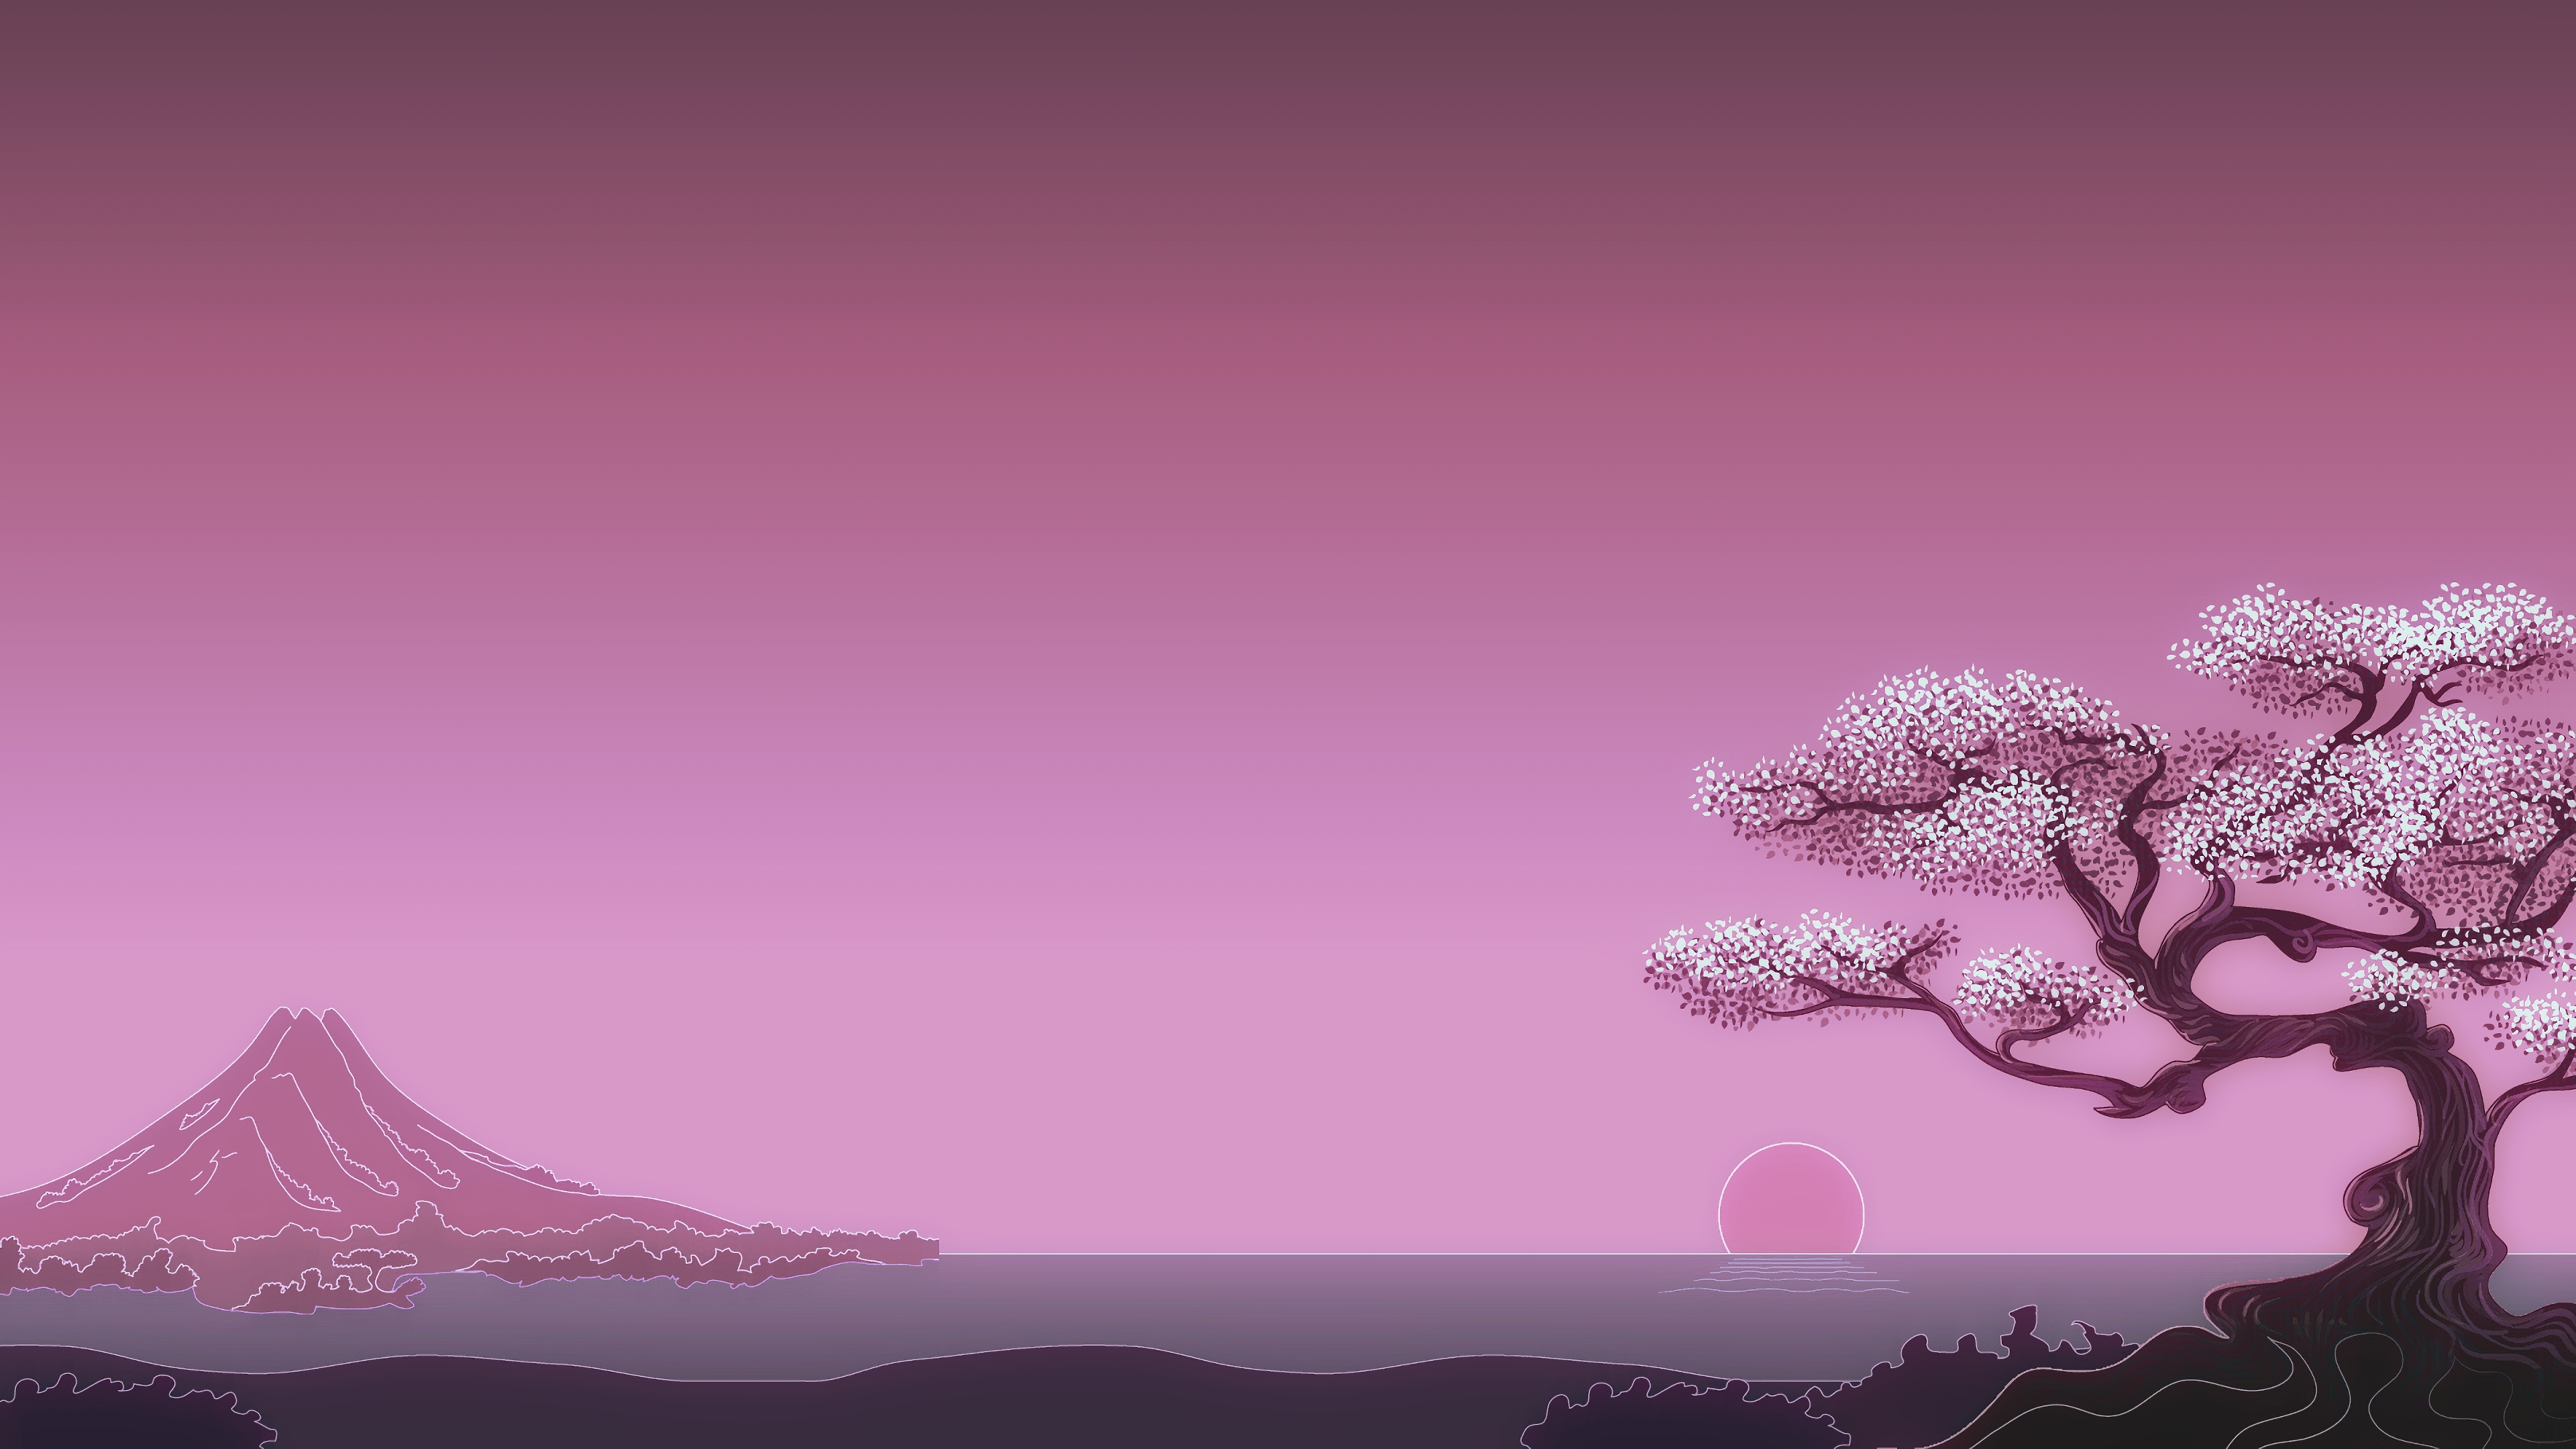 Wallpaper 4k Sakura Japanese Minimal Art Sakura 4k Wallpapers Sakura Japanese Minimal Art Wallpaper Sakura Wallpapers